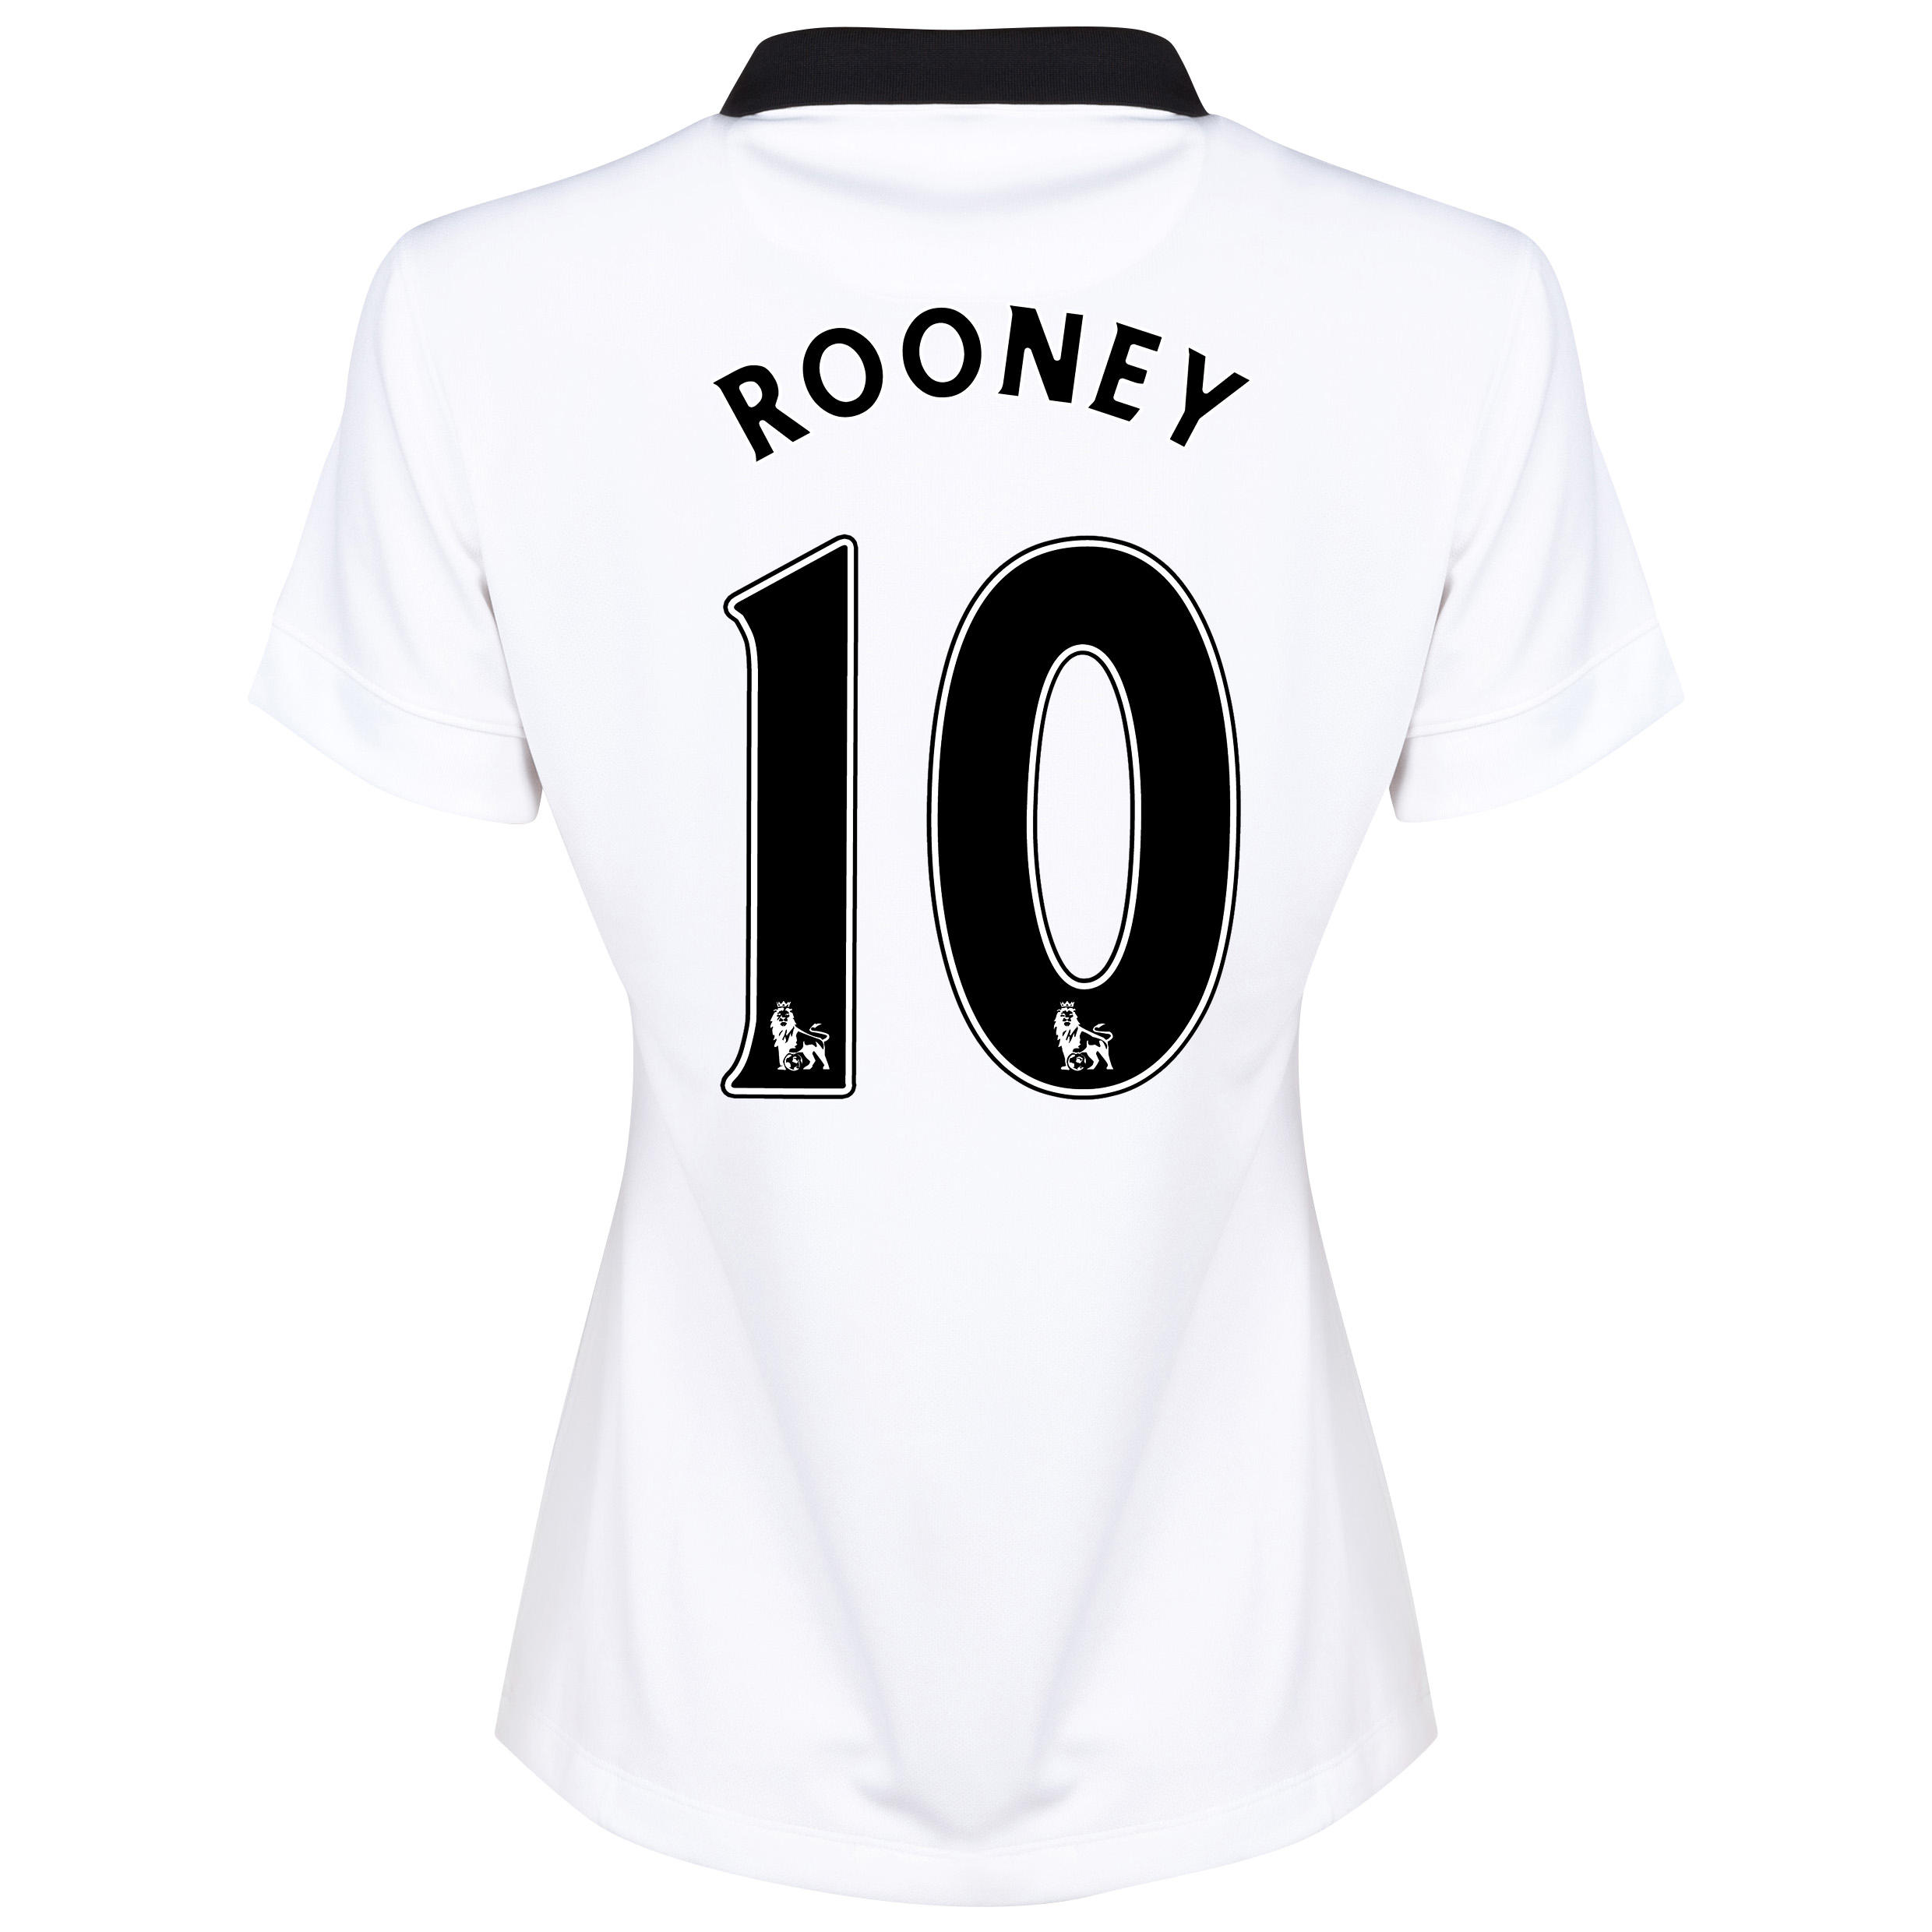 Manchester United Away Shirt 2014/15 - Womens White with Rooney 10 printing